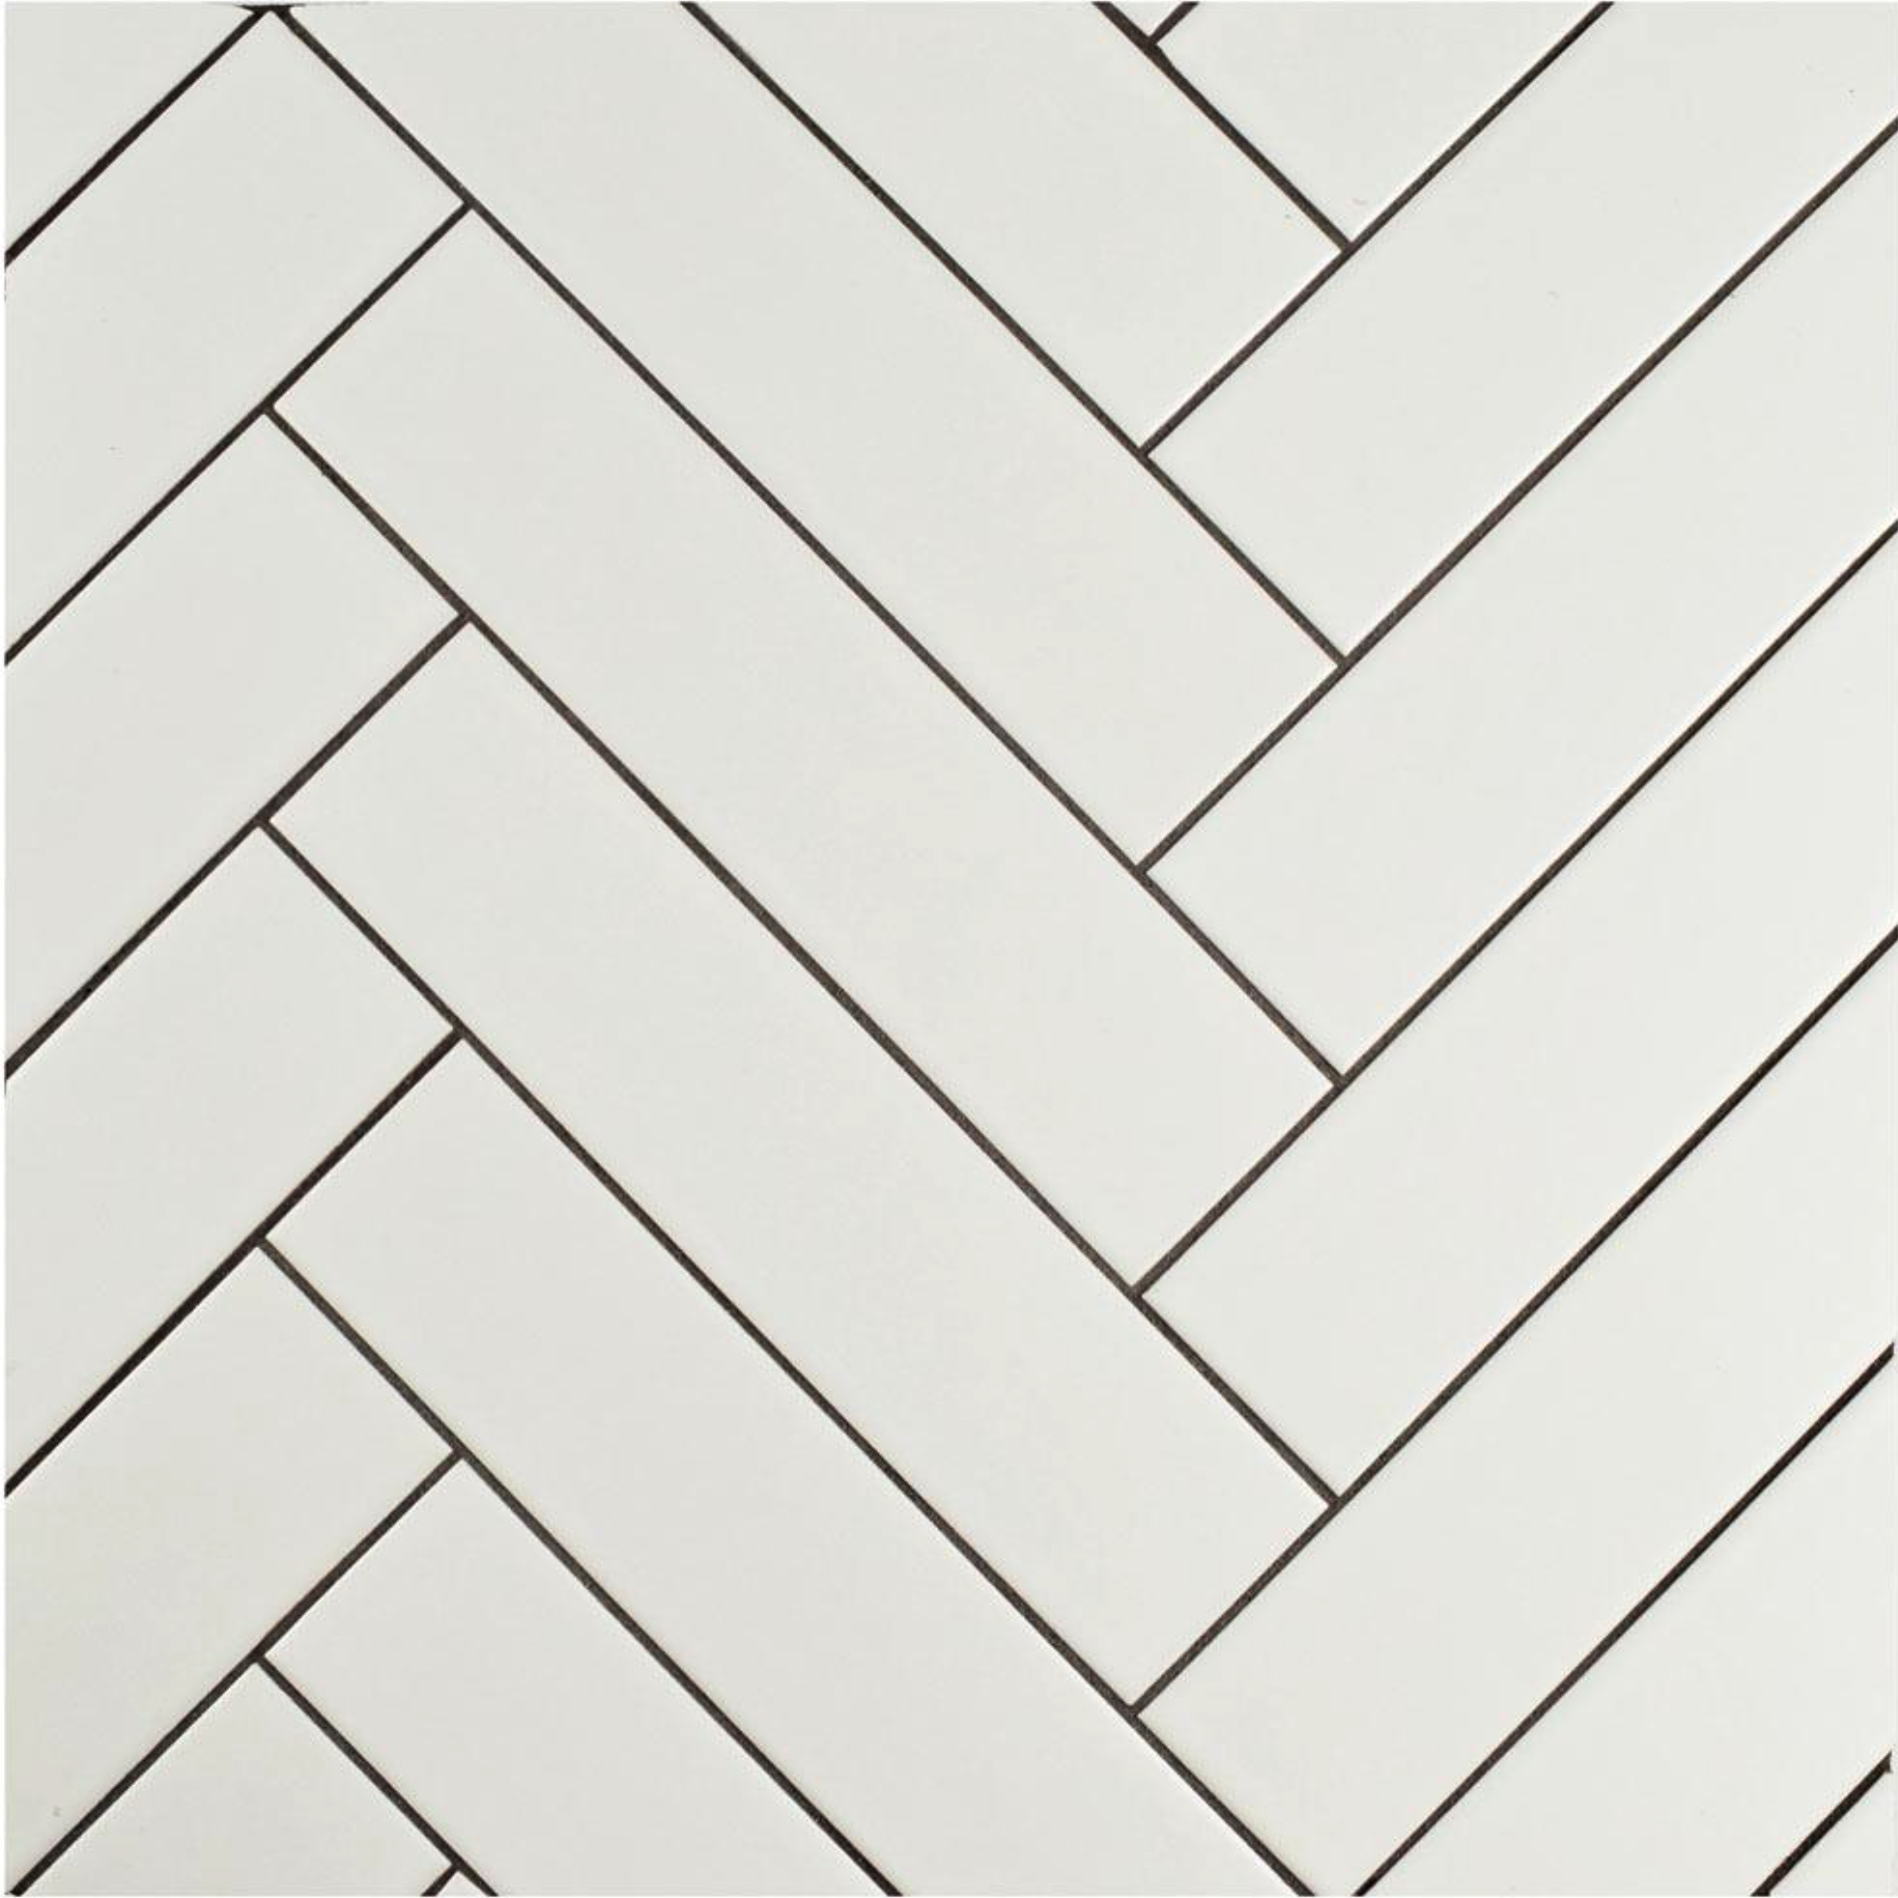 8. Tile - White ceramic tile 1.75 x 7.75 inch from Home Depot